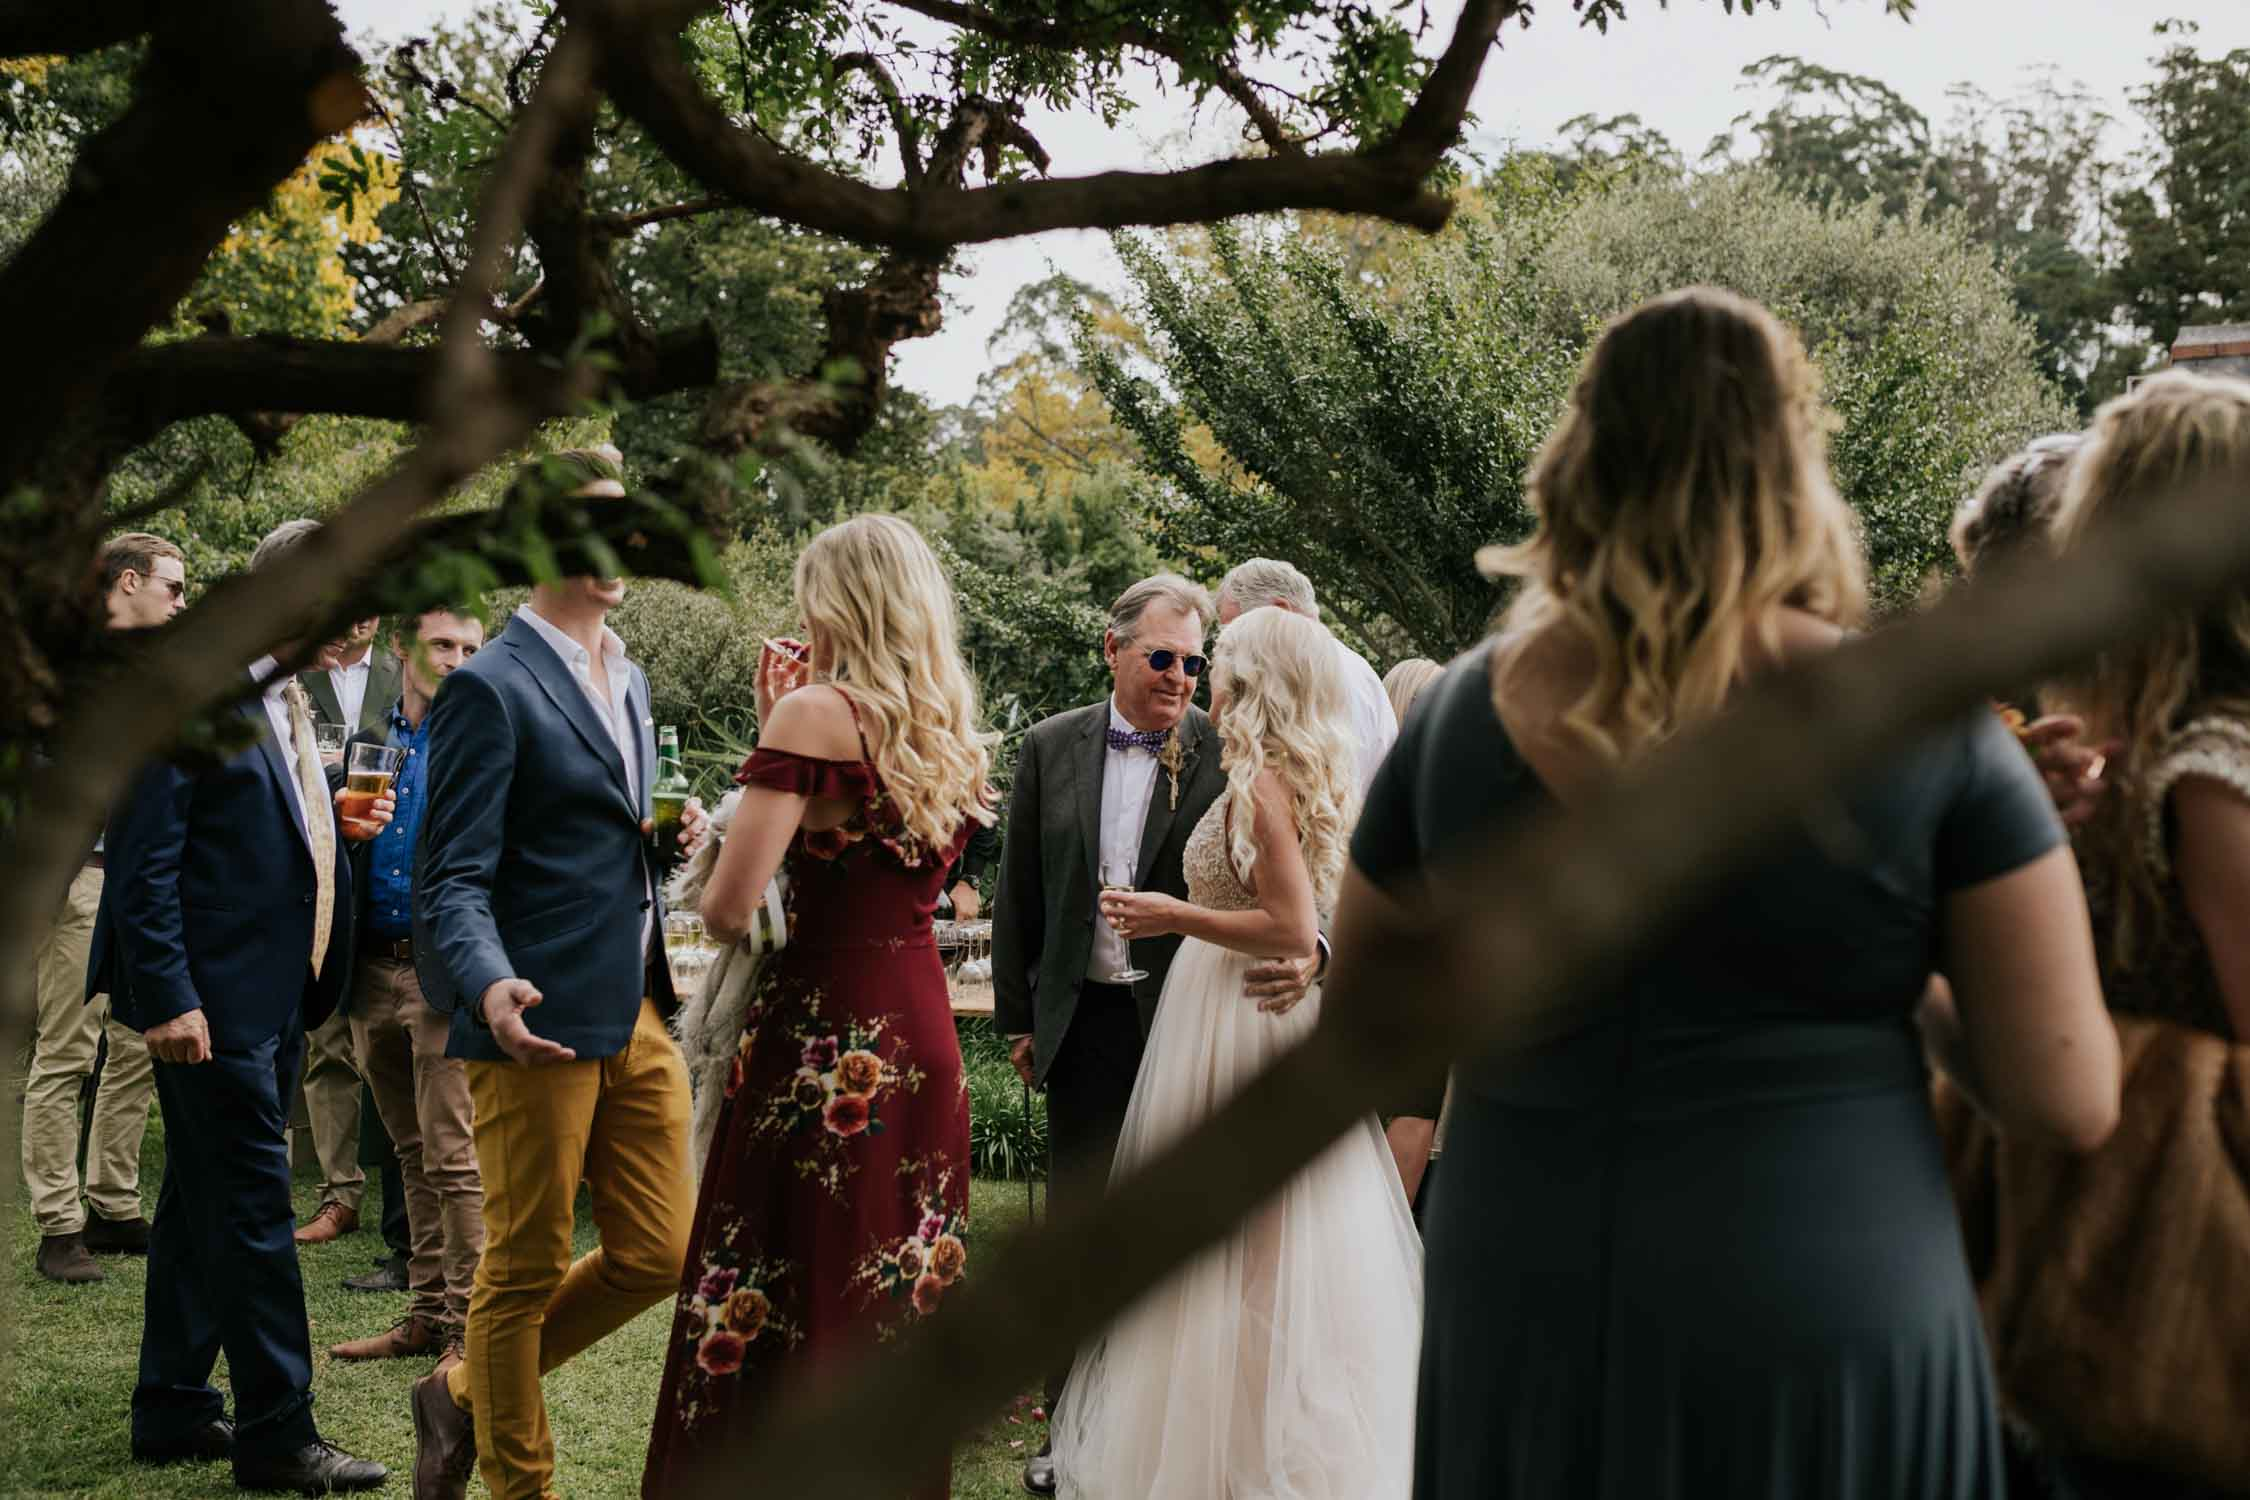 Guests socialising at farm wedding under the trees.